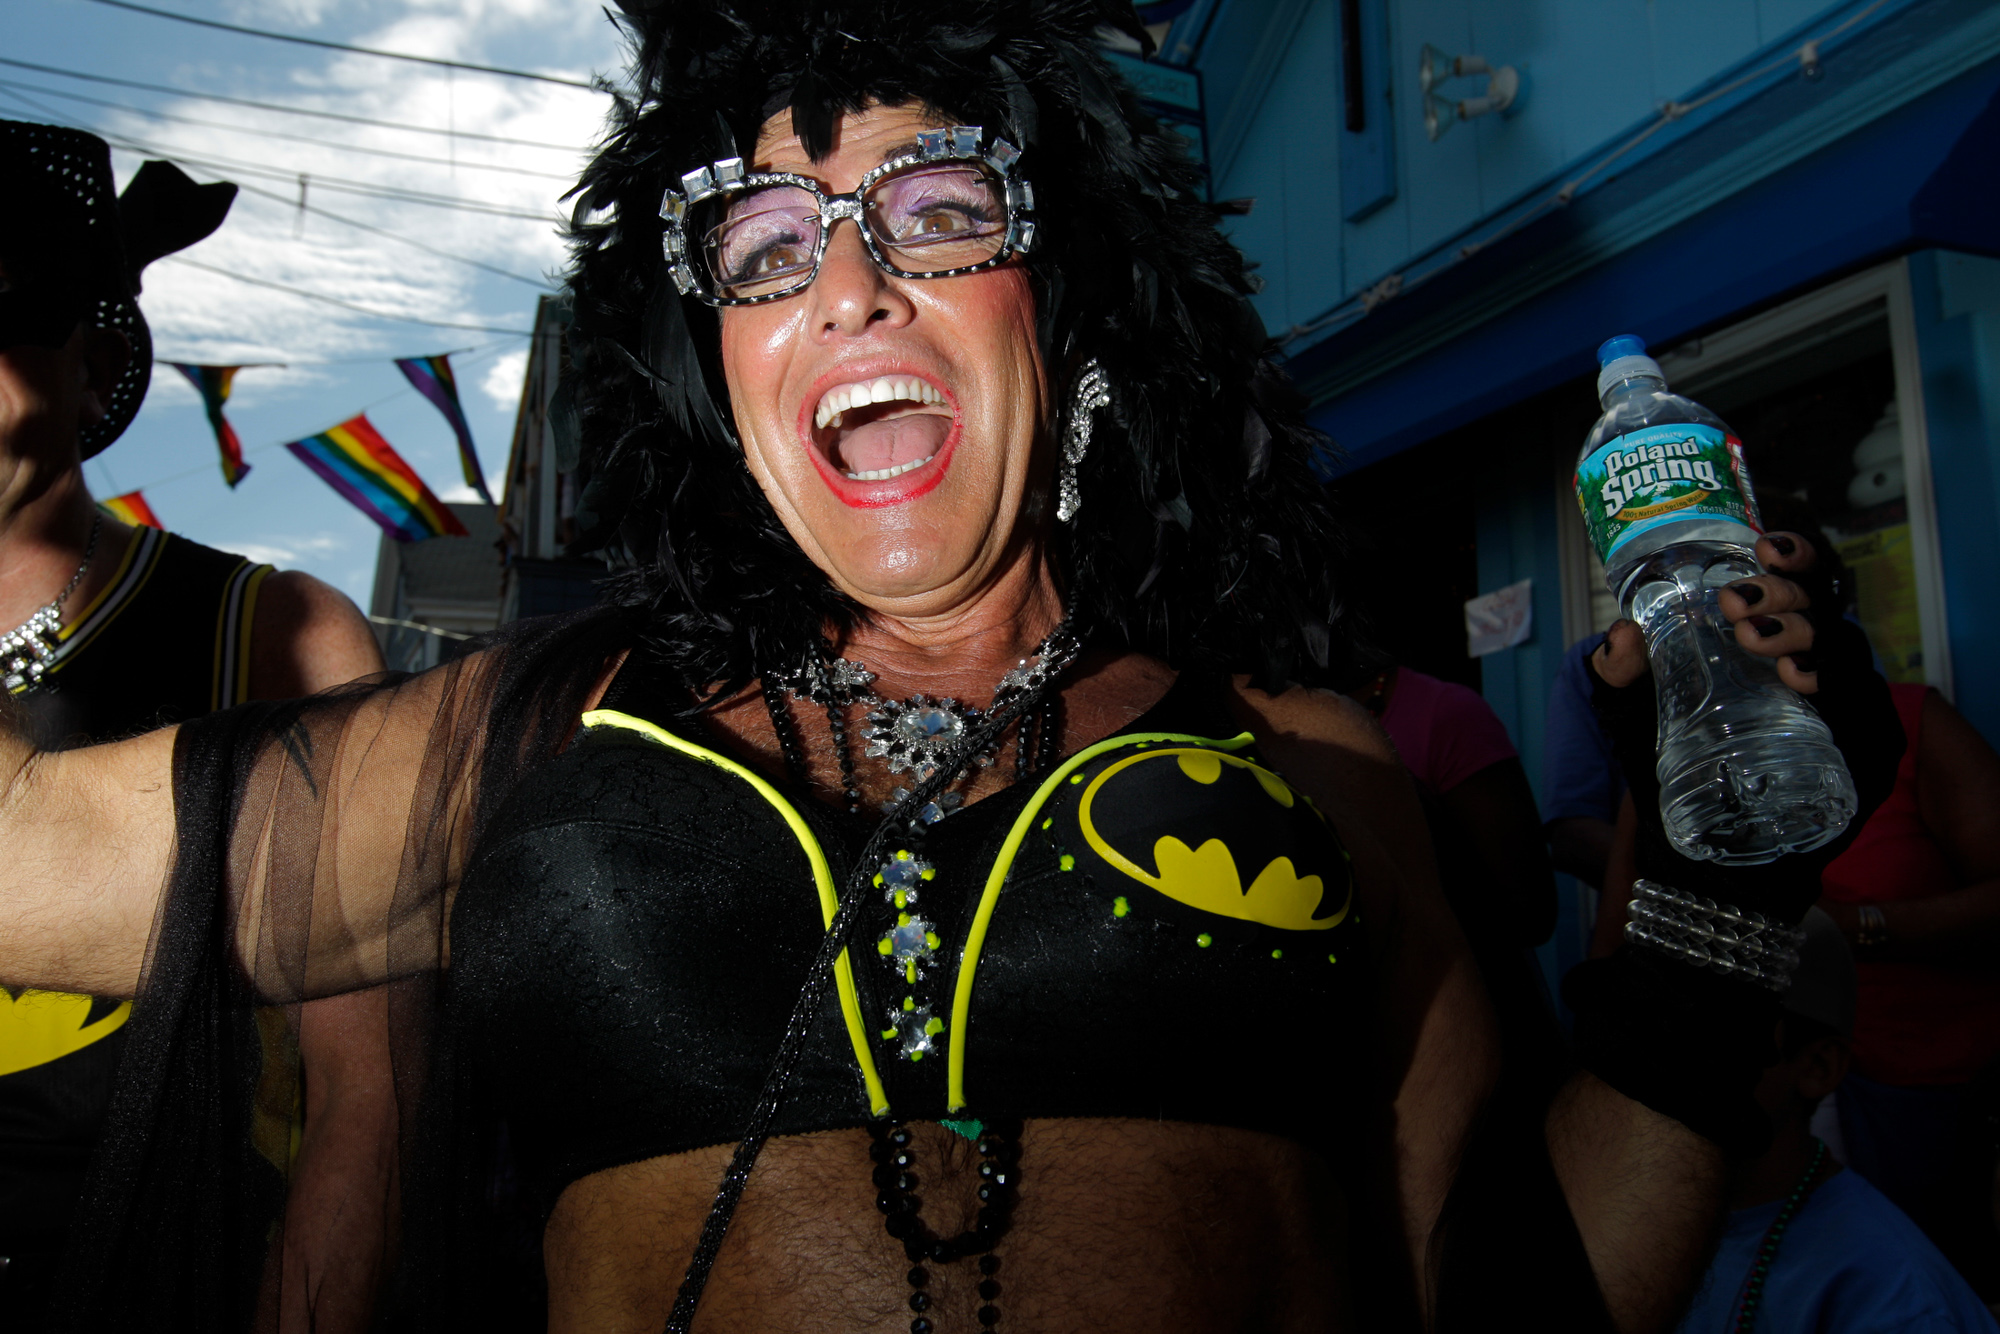 Scenes from the 2014 Provincetown Carnival in Provincetown, Massachusetts.